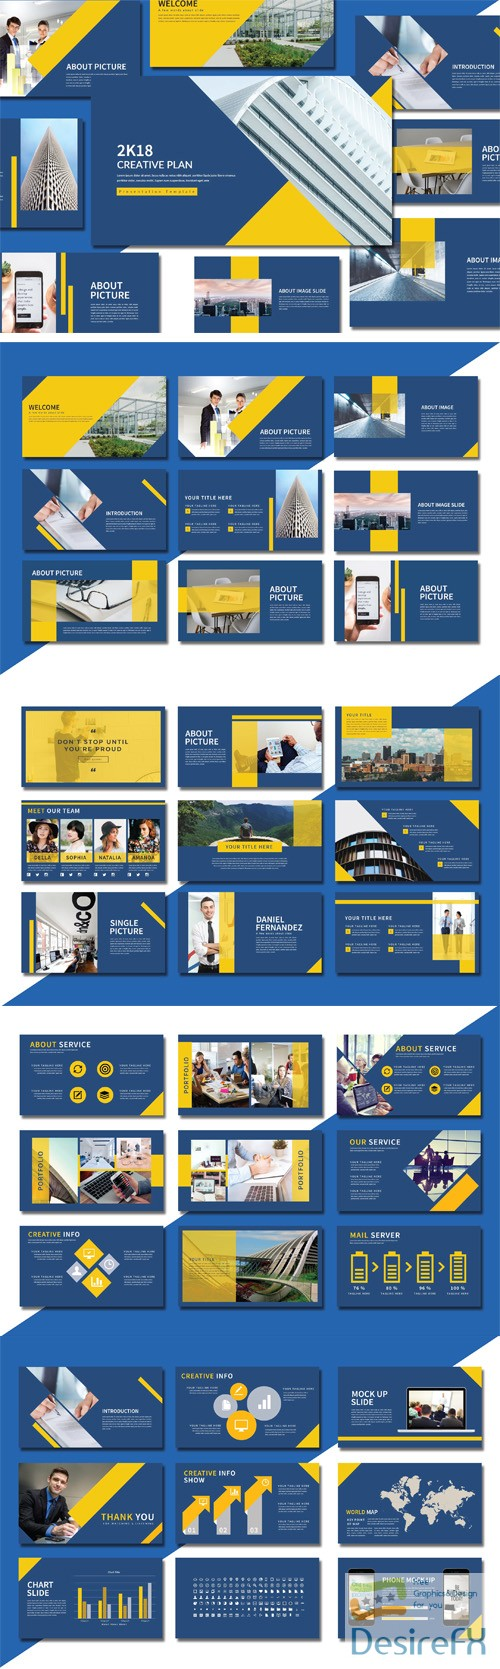 powerpoint - Creative Presentation Template [PPT/PPTX]